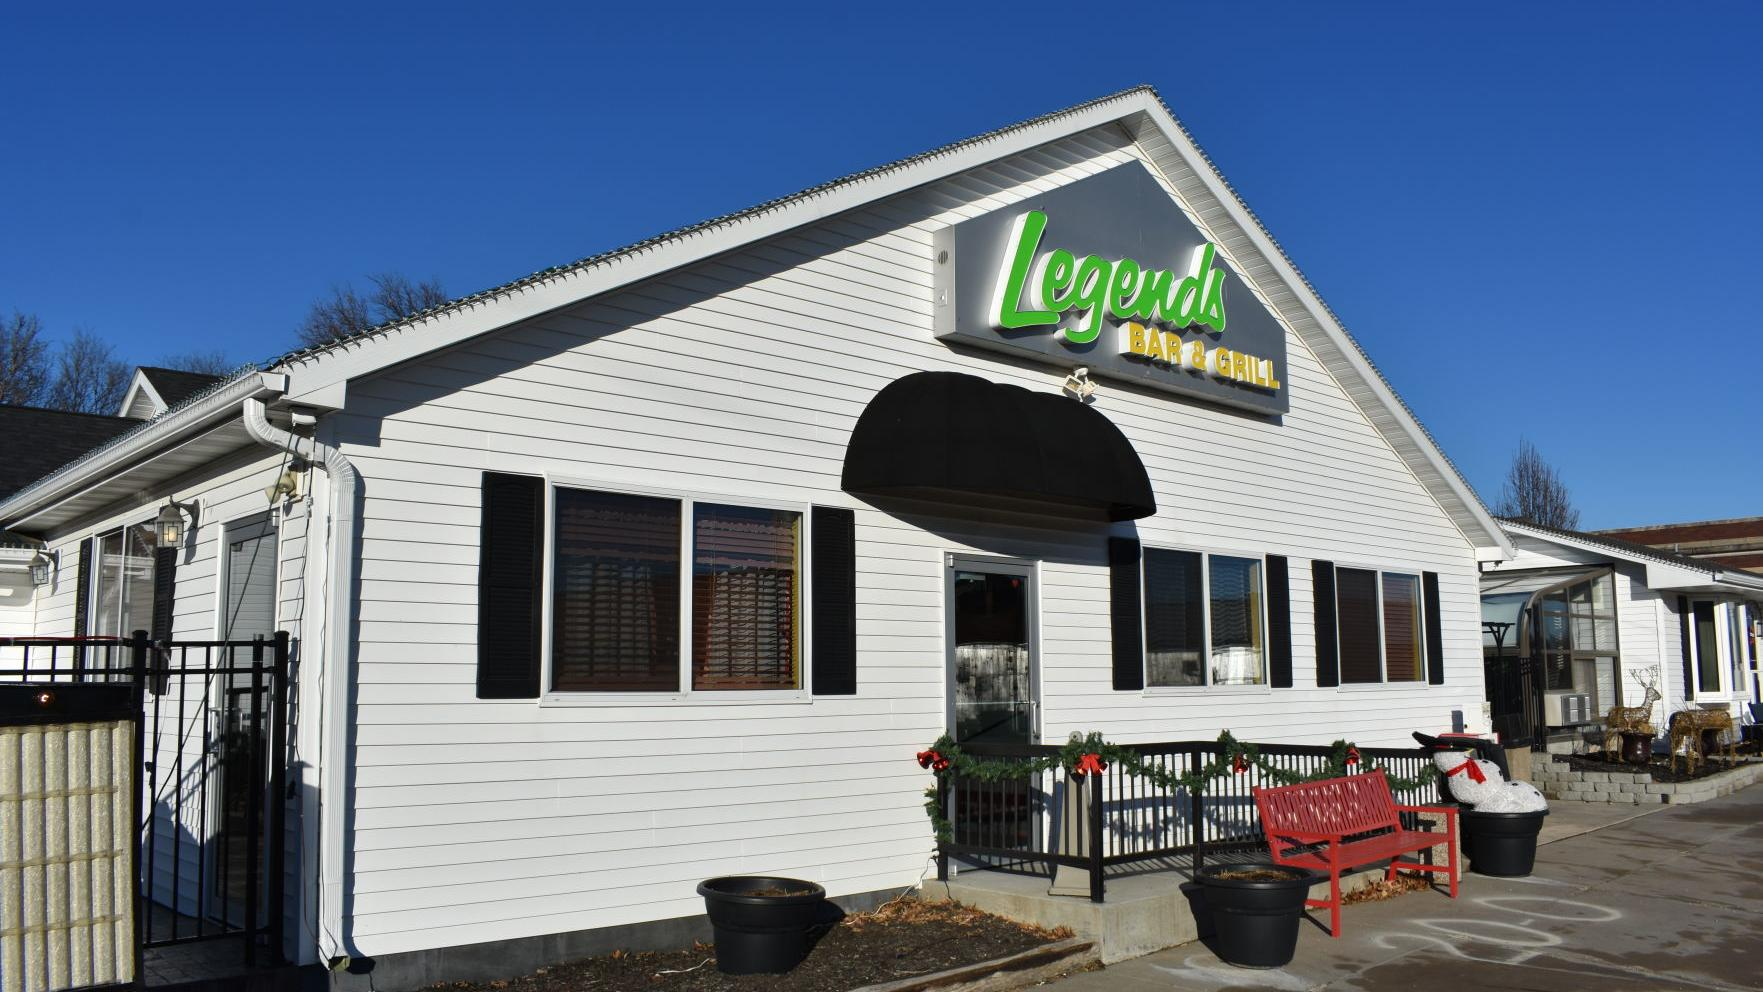 Legends of Clatonia restaurant moving to Beatrice